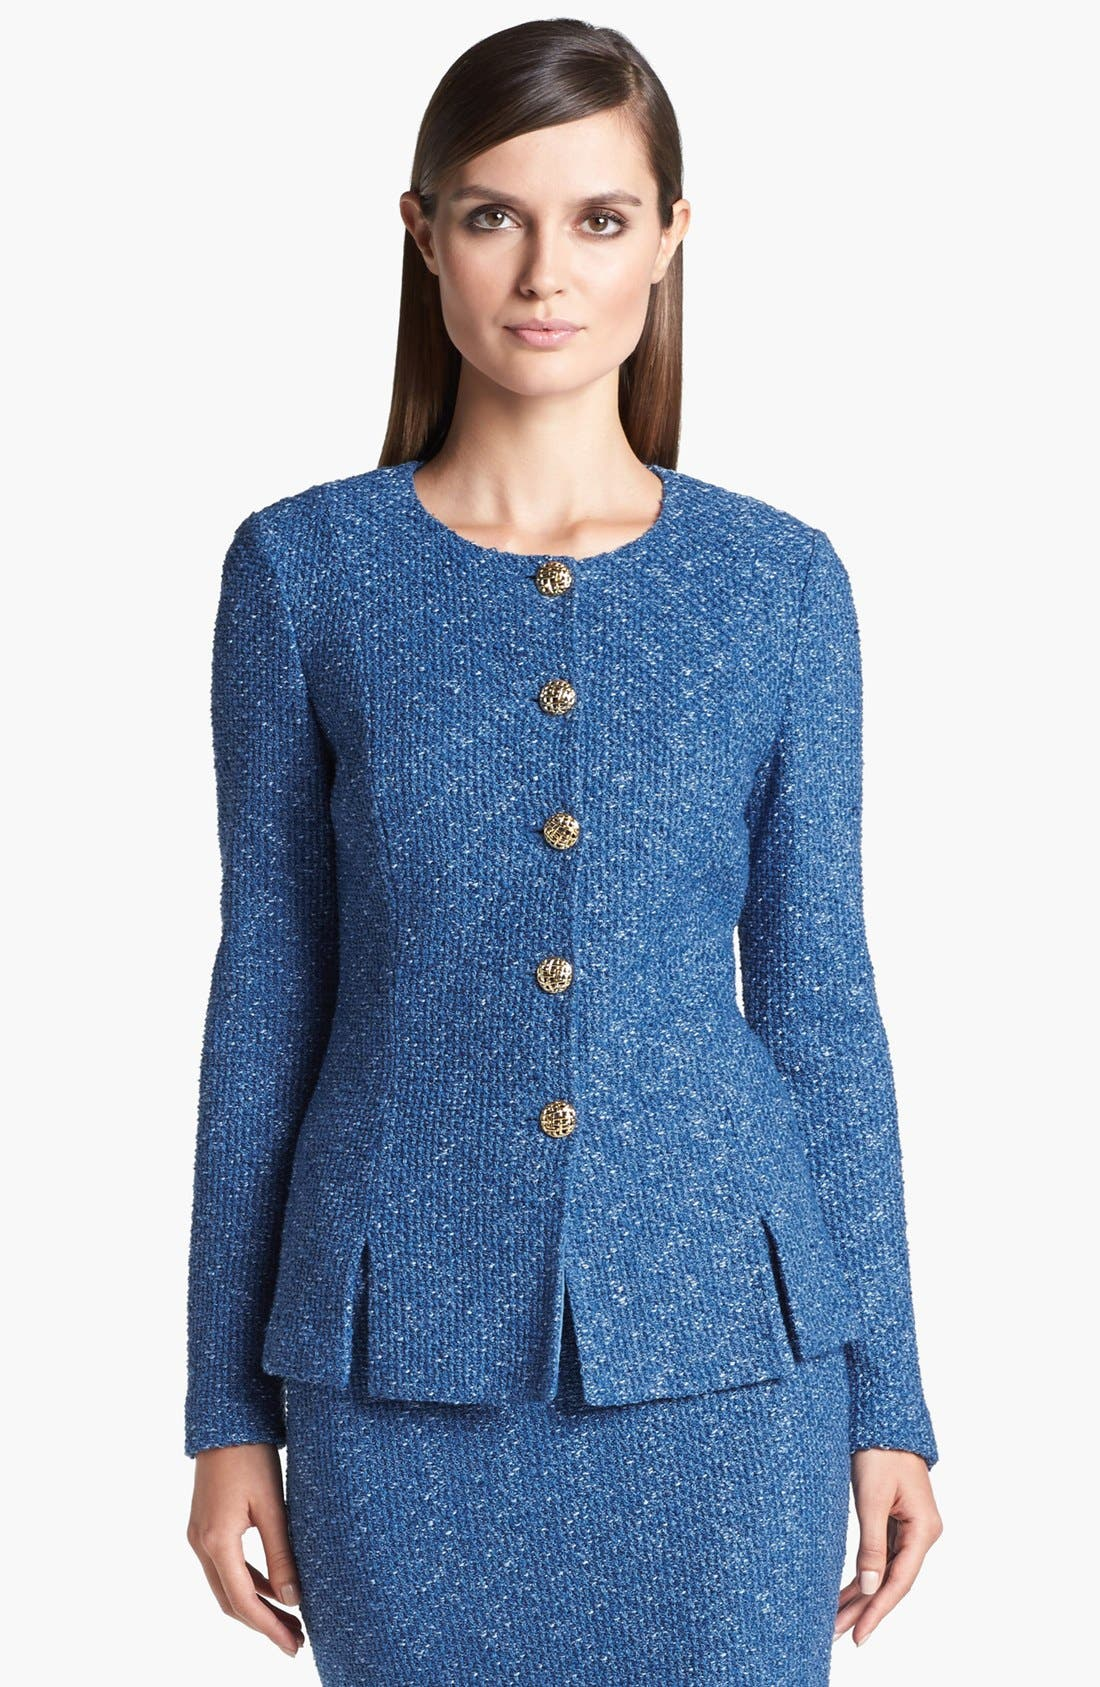 Alternate Image 1 Selected - St. John Collection Flecked Tweed Jacket